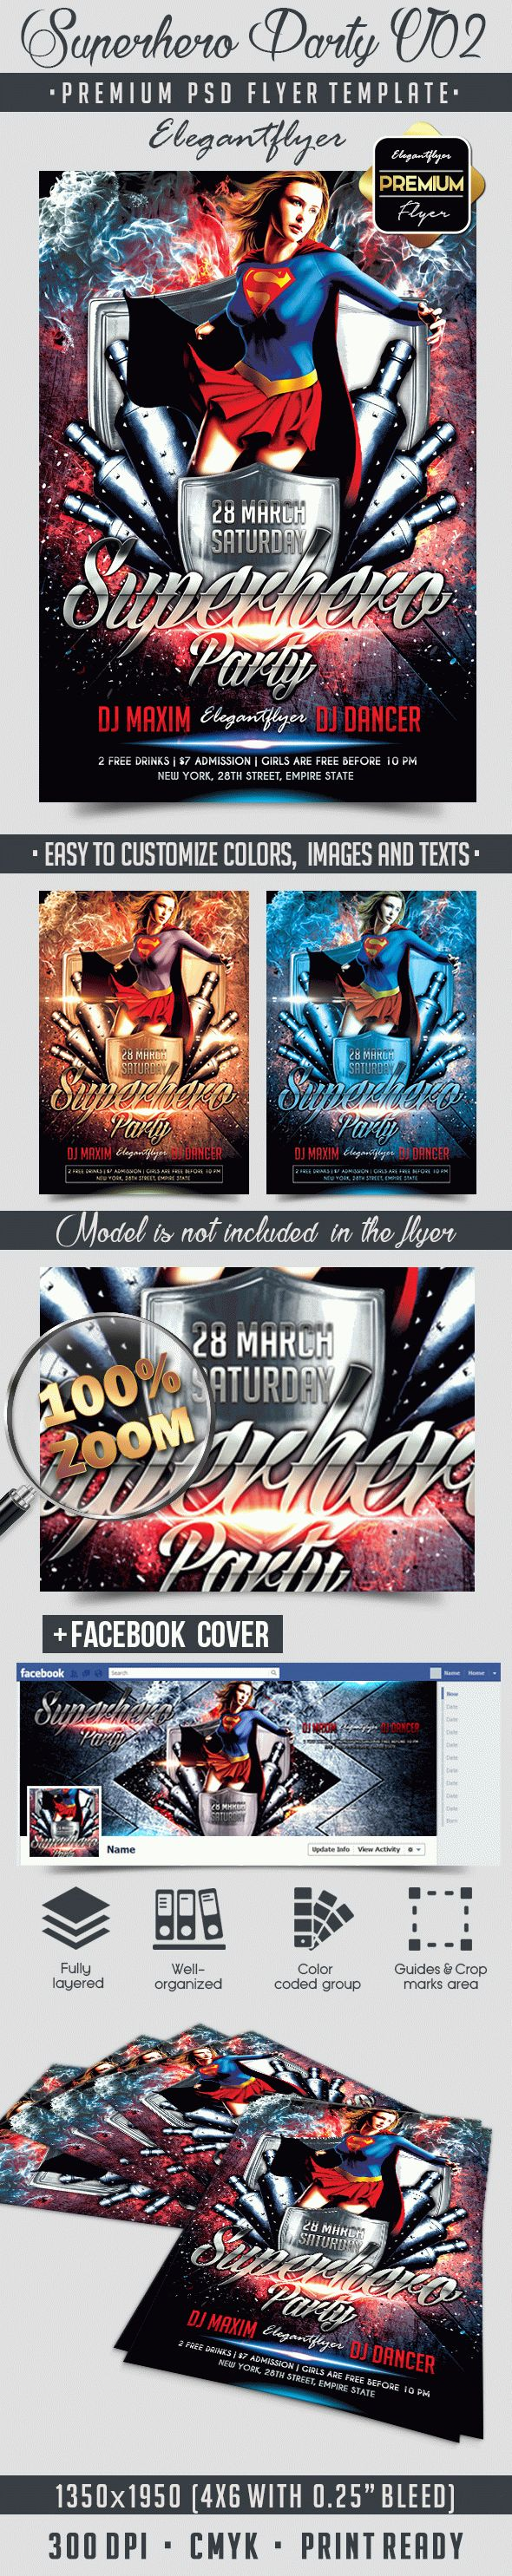 Superhero Party V02 – Flyer PSD Template + Facebook Cover